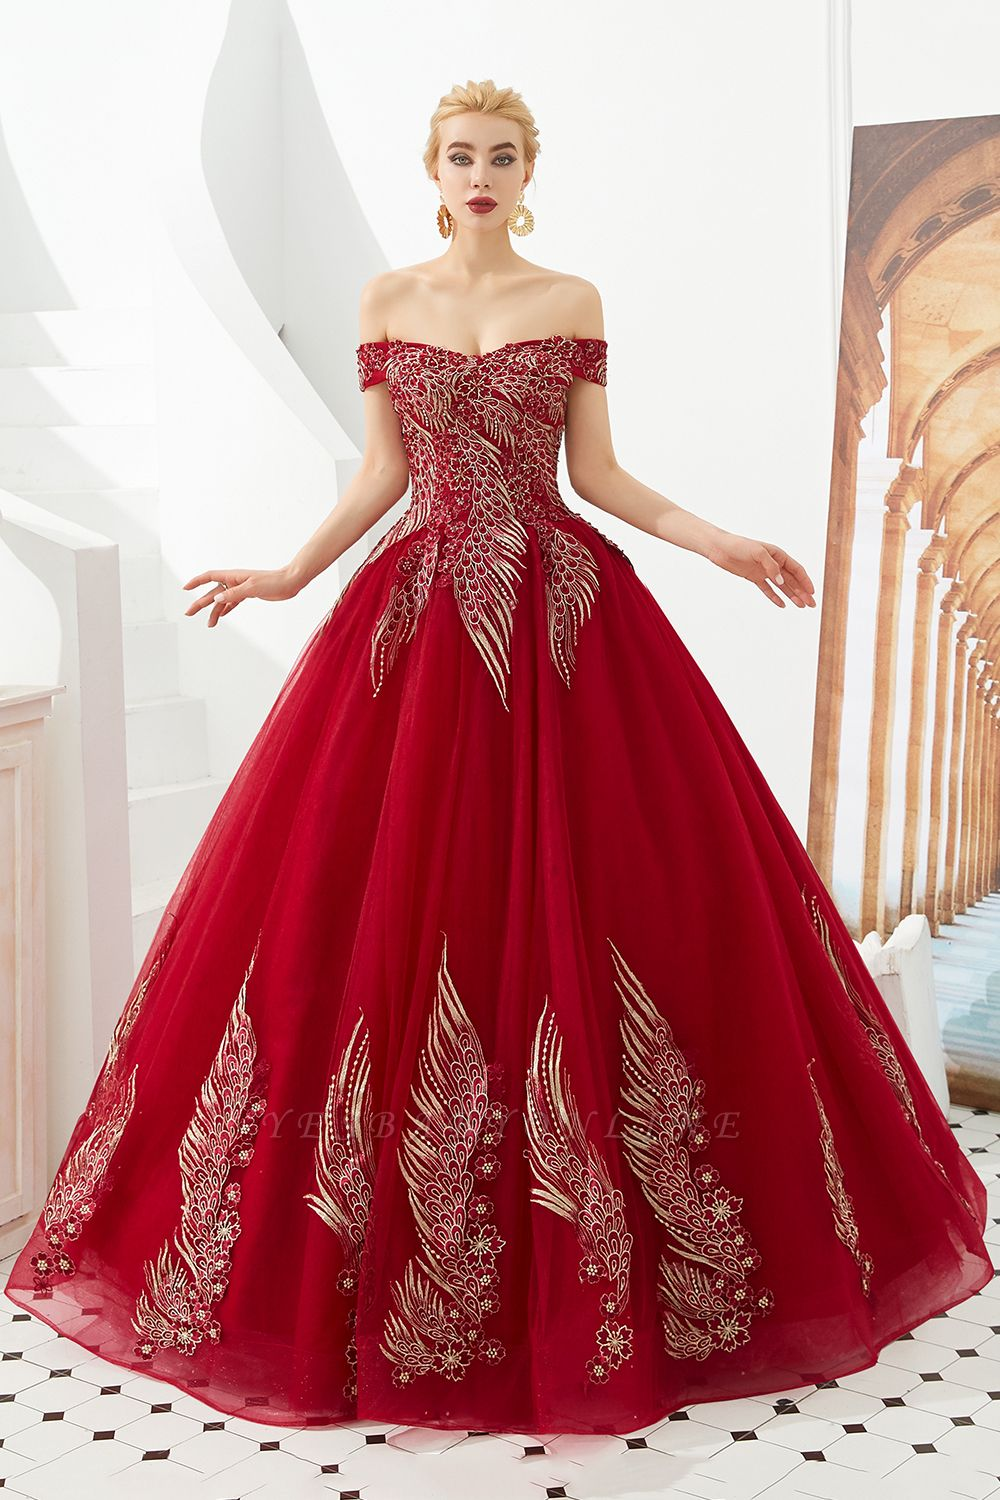 Glamorous Off the Shoulder Sweetheart Applique A-line Floor Length Prom Dresses